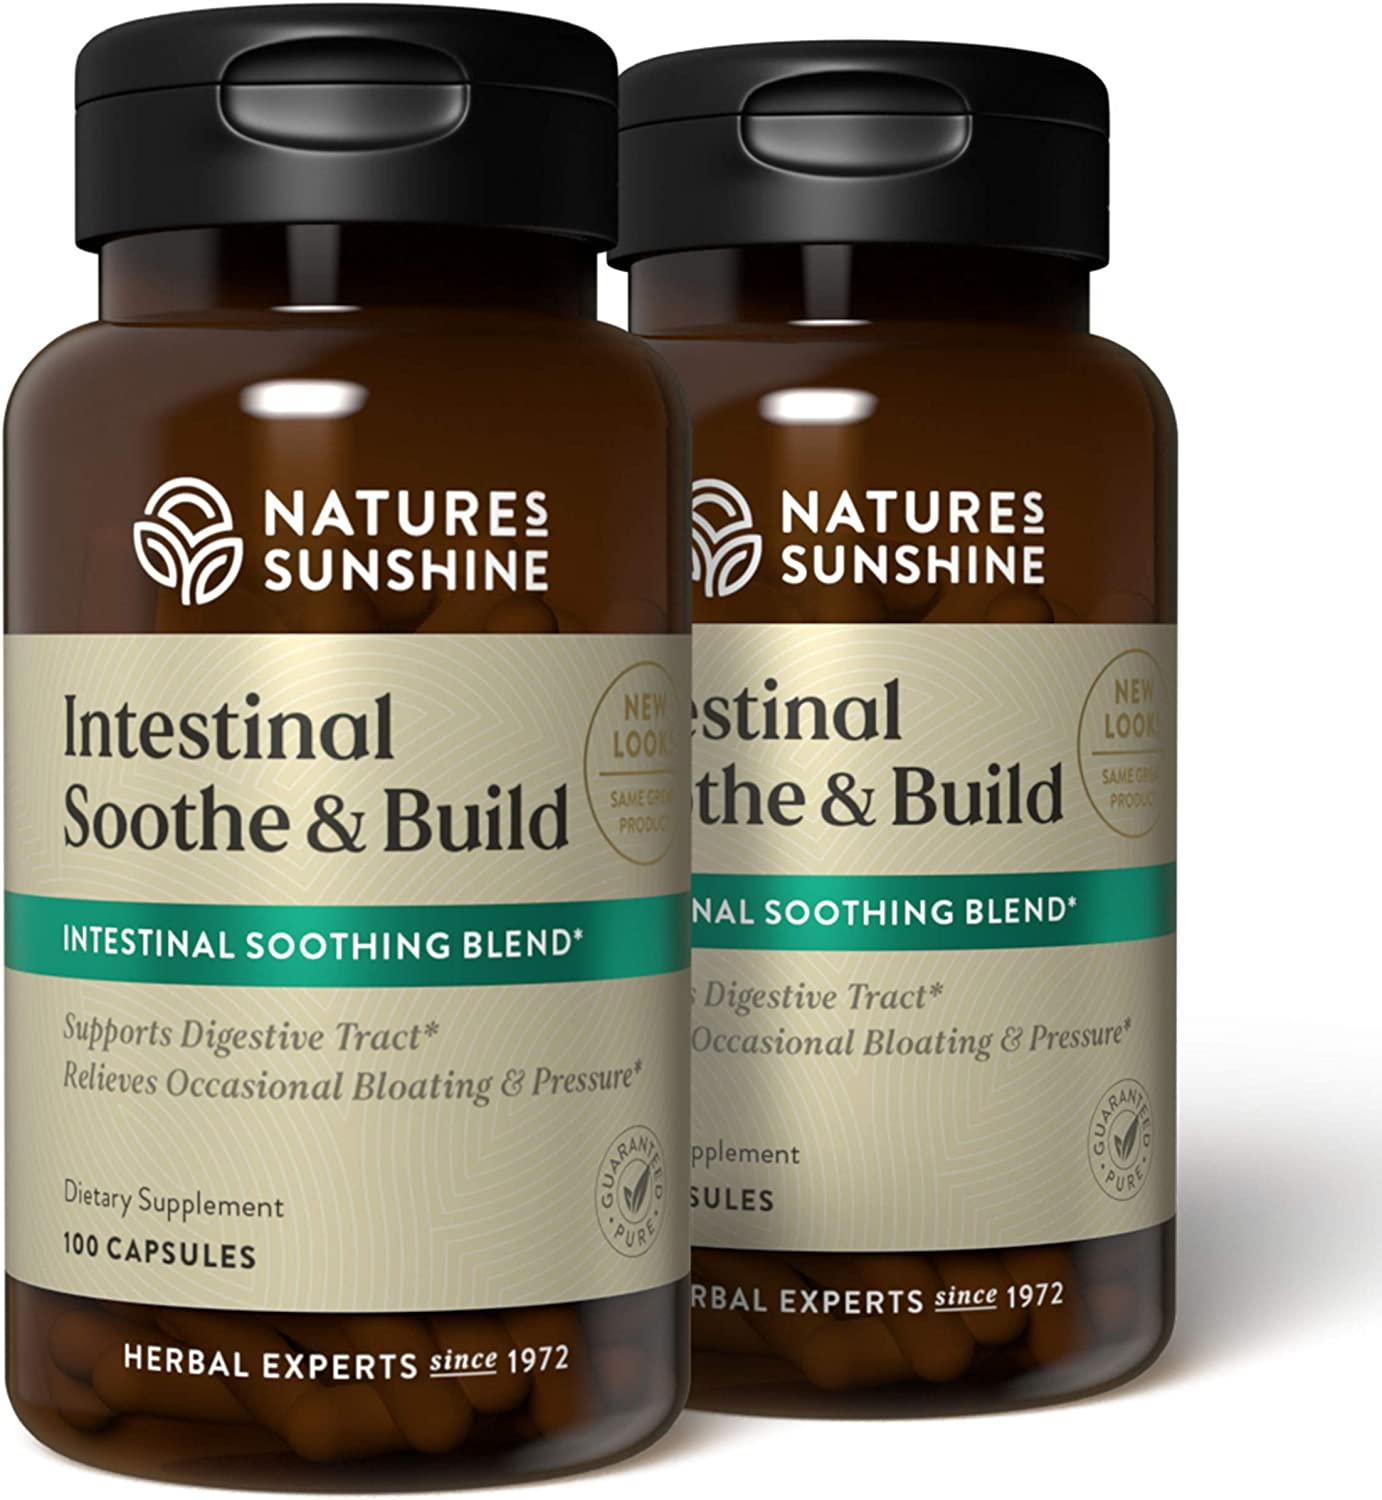 Nature's Sunshine Intestinal Soothe and Build 100 Capsules, 2 Pack